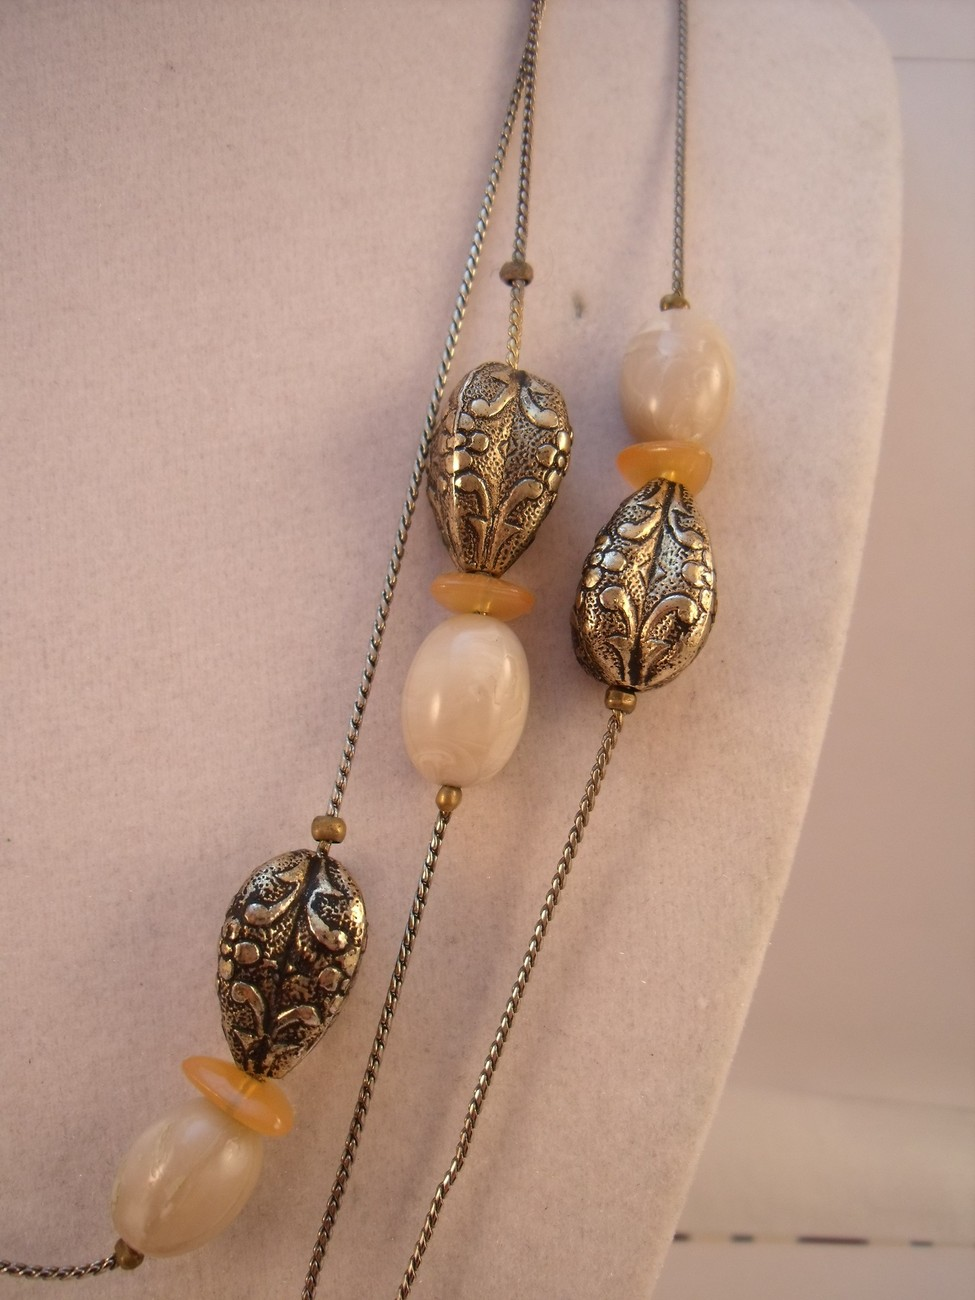 Gold plated chain necklace with beads in shades of gold and cream